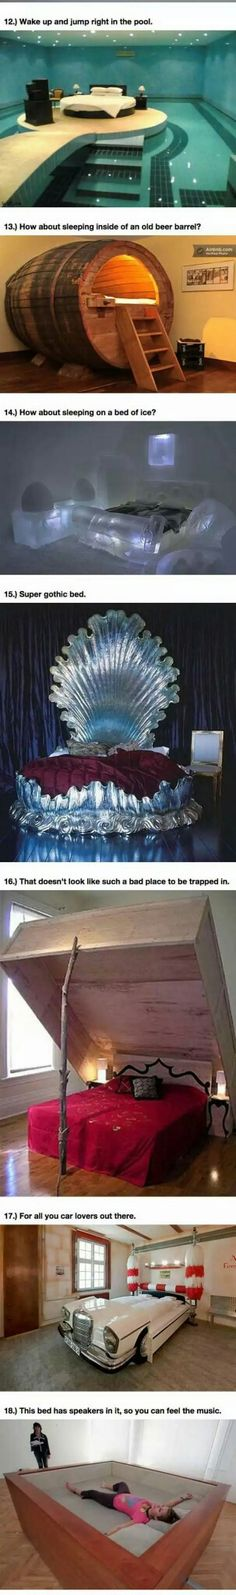 Funny pictures about 25 Amazing Beds Will Make You Wish It Was Nap Time. Oh, and cool pics about 25 Amazing Beds Will Make You Wish It Was Nap Time. Also, 25 Amazing Beds Will Make You Wish It Was Nap Time photos. Dream Rooms, Dream Bedroom, Pool Bedroom, Bedroom Bed, Bed Rooms, Awesome Bedrooms, Cool Rooms, Future House, My House